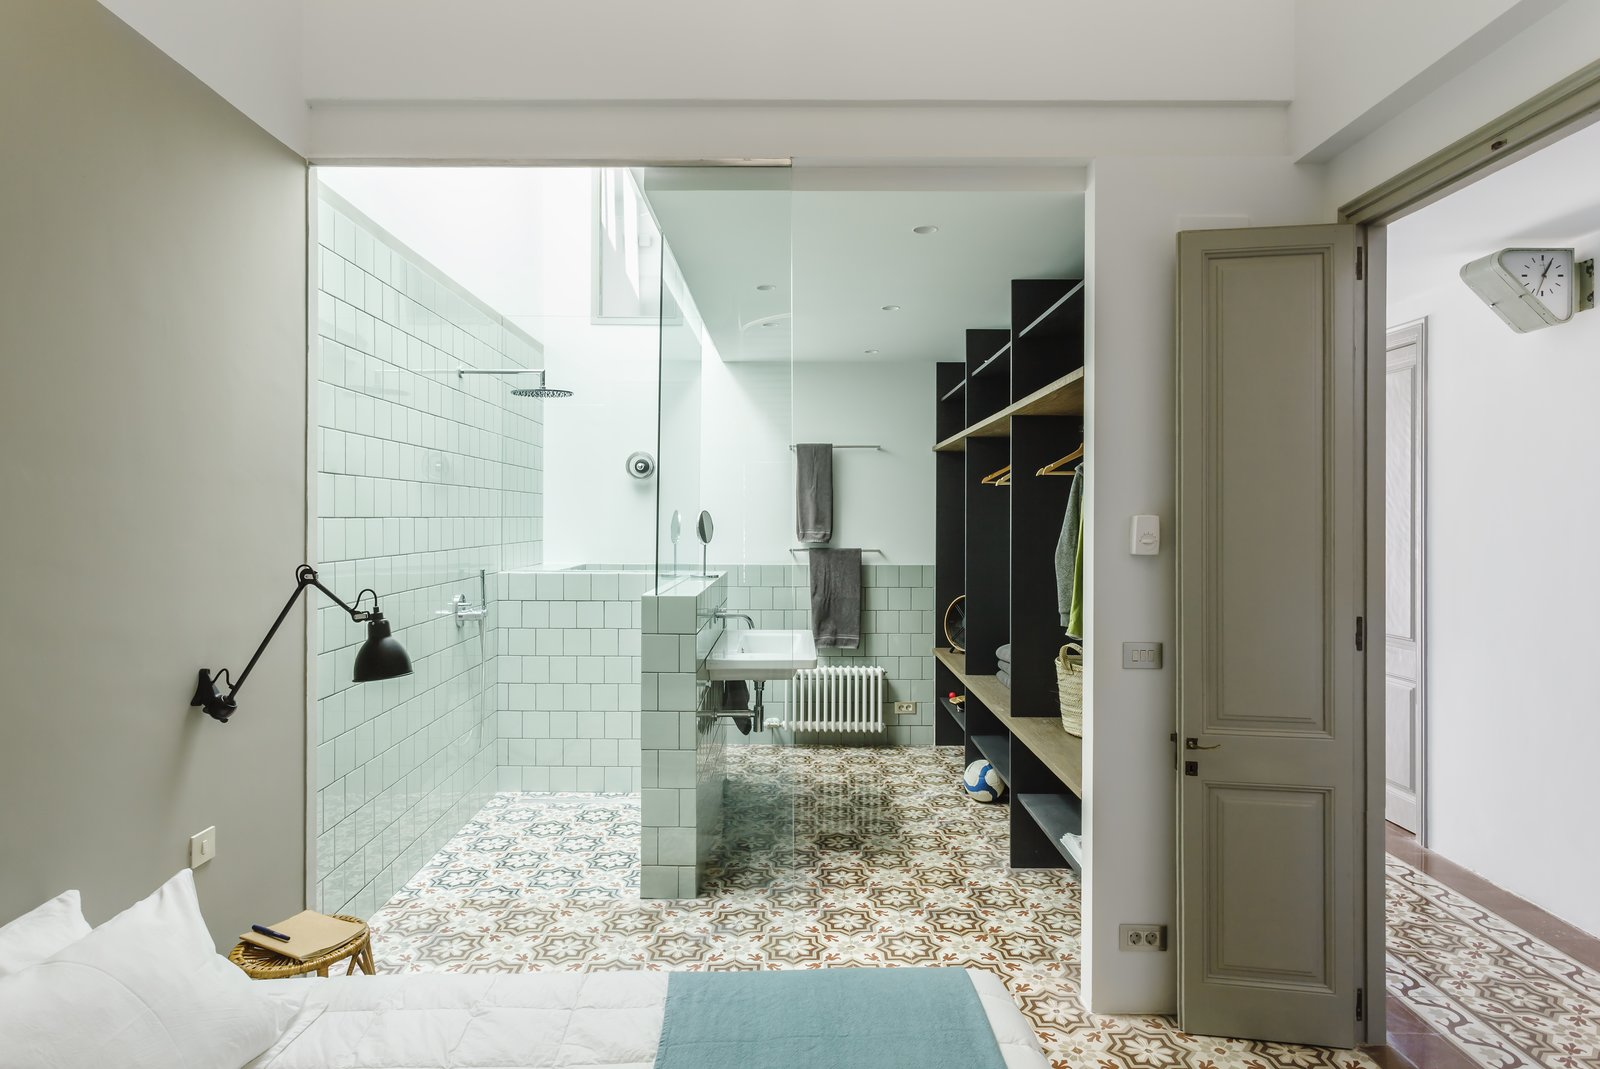 Tagged: Bath, Ceramic Tile, Wall Mount, Open, and Porcelain Tile.  Best Bath Ceramic Tile Wall Mount Photos from A Careful Renovation Brings New Life to a Family's Heritage Home on the Spanish Coast